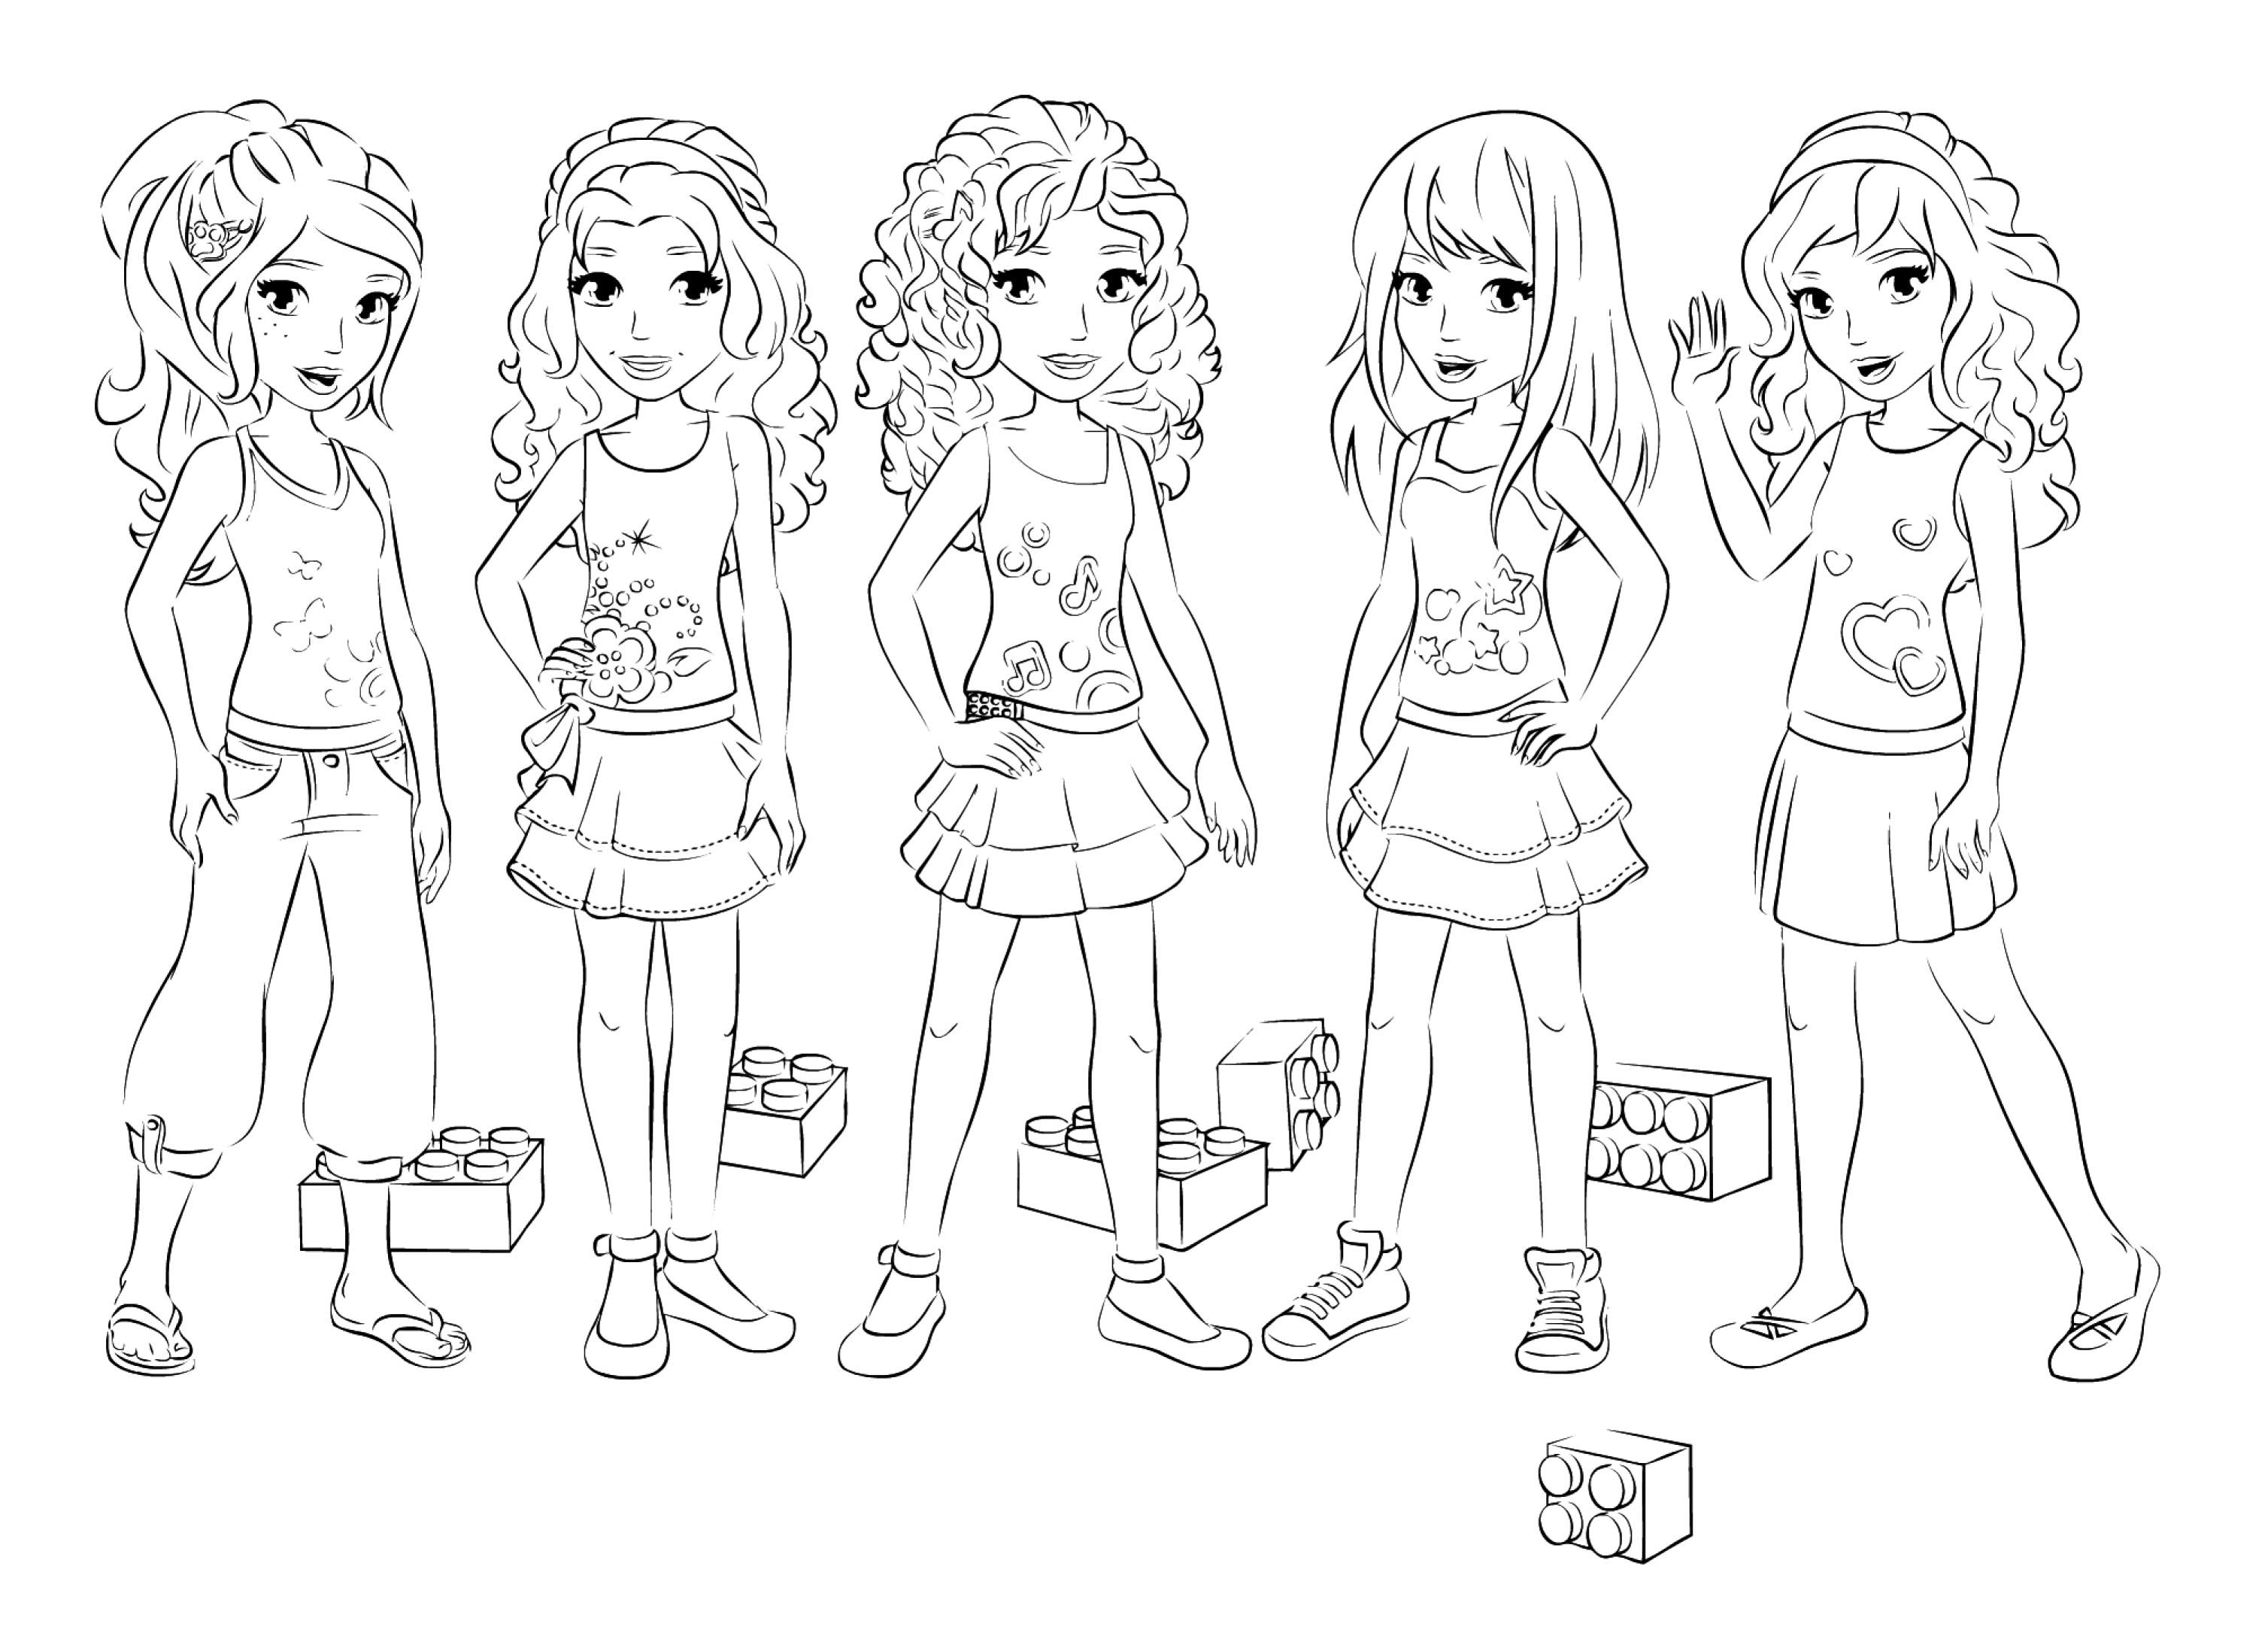 3016x2179 Lego Friends All Coloring Page For Kids Best Of Girl Lego Coloring